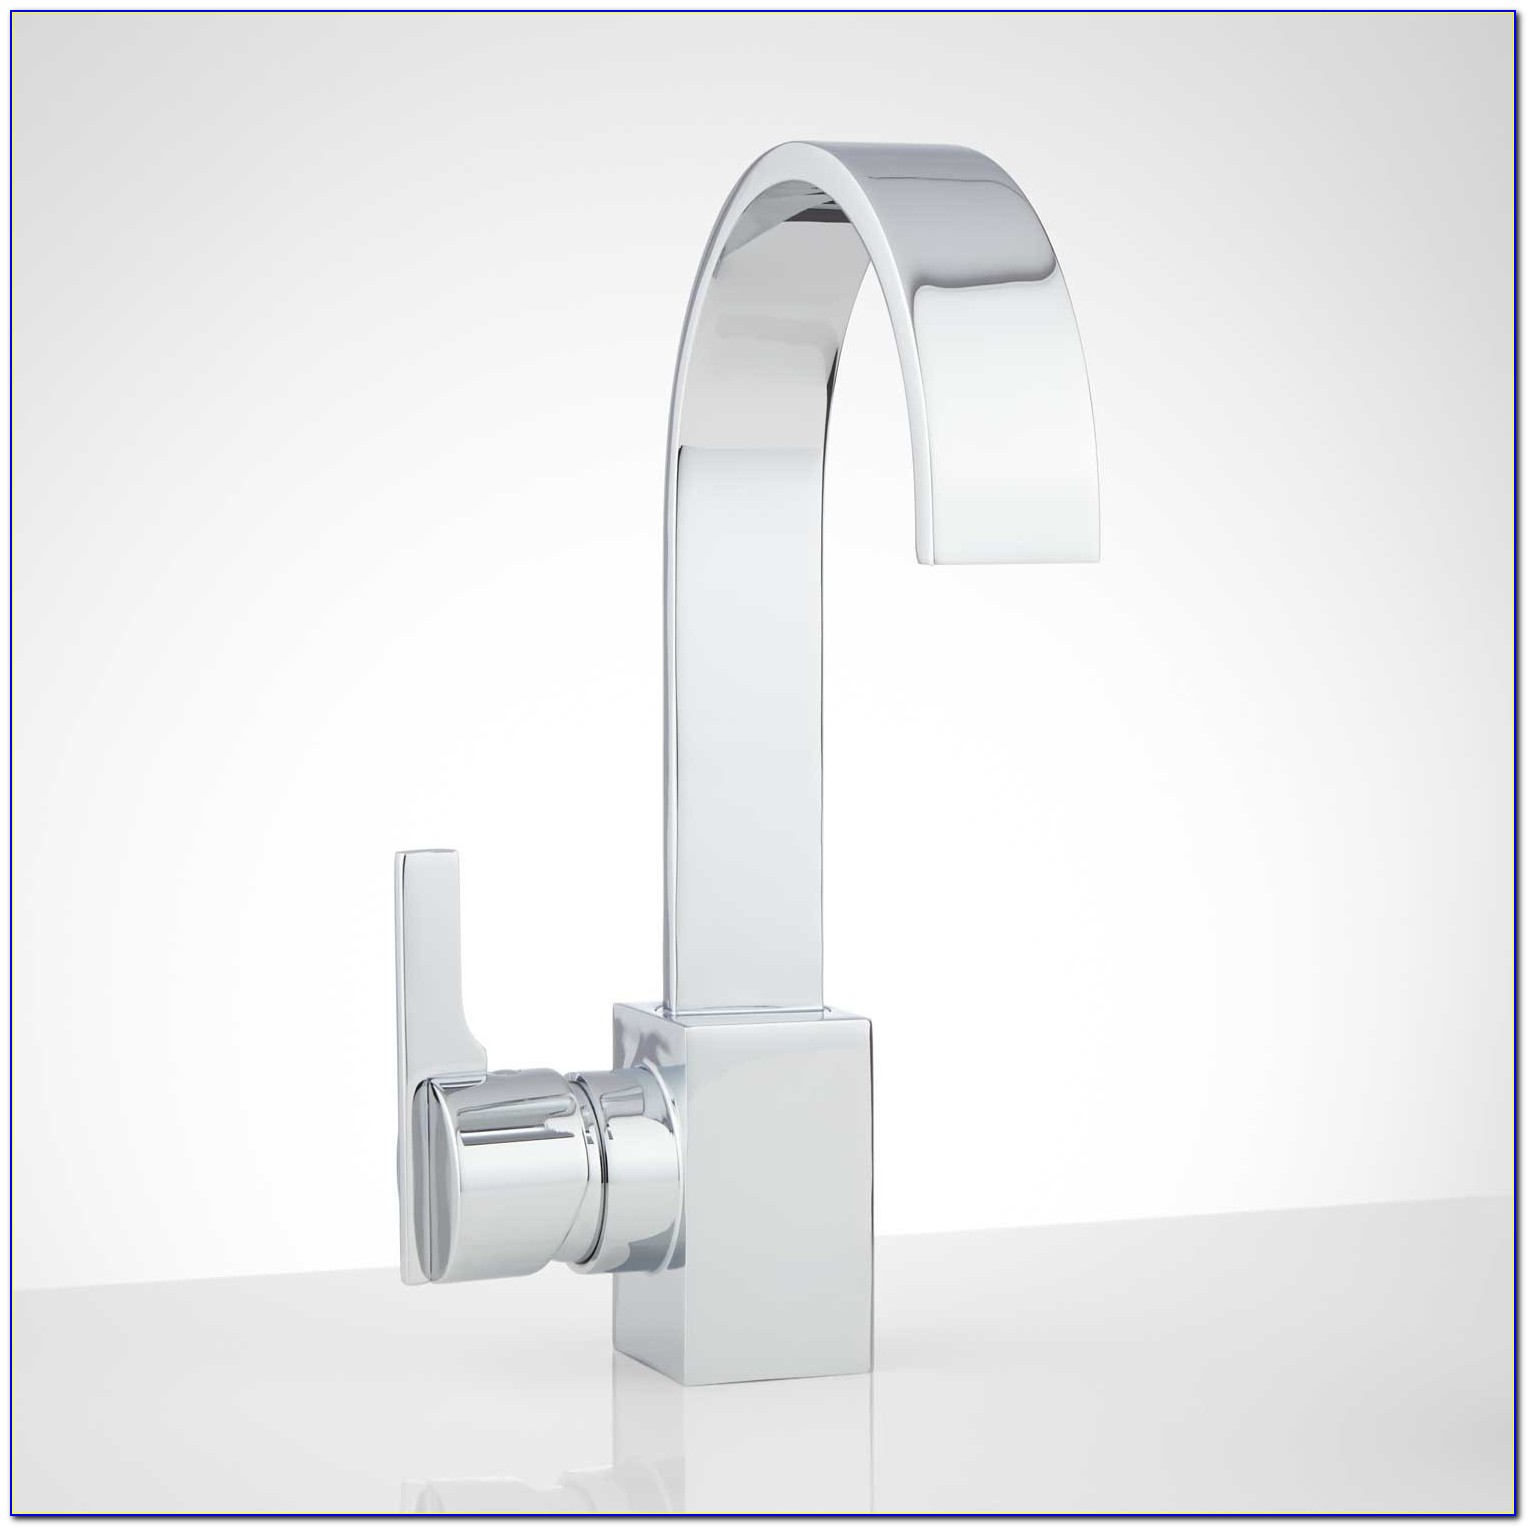 Different Types Of Tub Faucets Different Types Of Tub Faucets Different Types Of Modern Bathroom Faucets Free Designs Interior 1500 X 1500